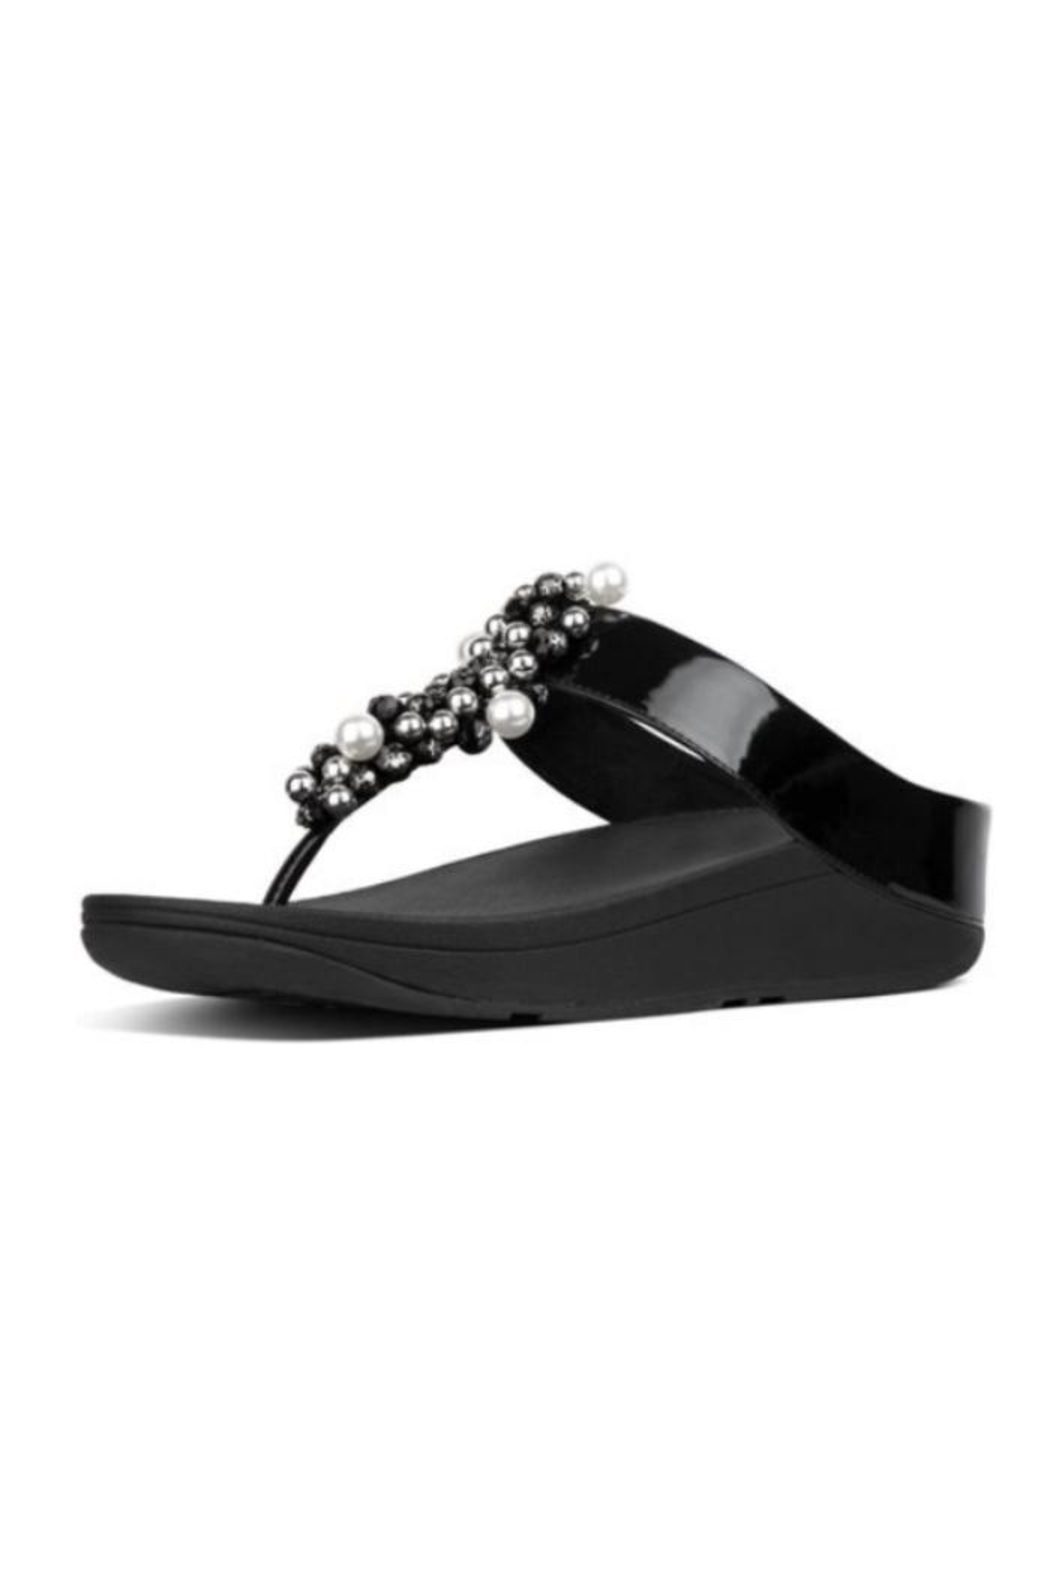 b95a825bc Fitflop deco sandal front cropped image jpg 1050x1575 Fitflop shoes foot